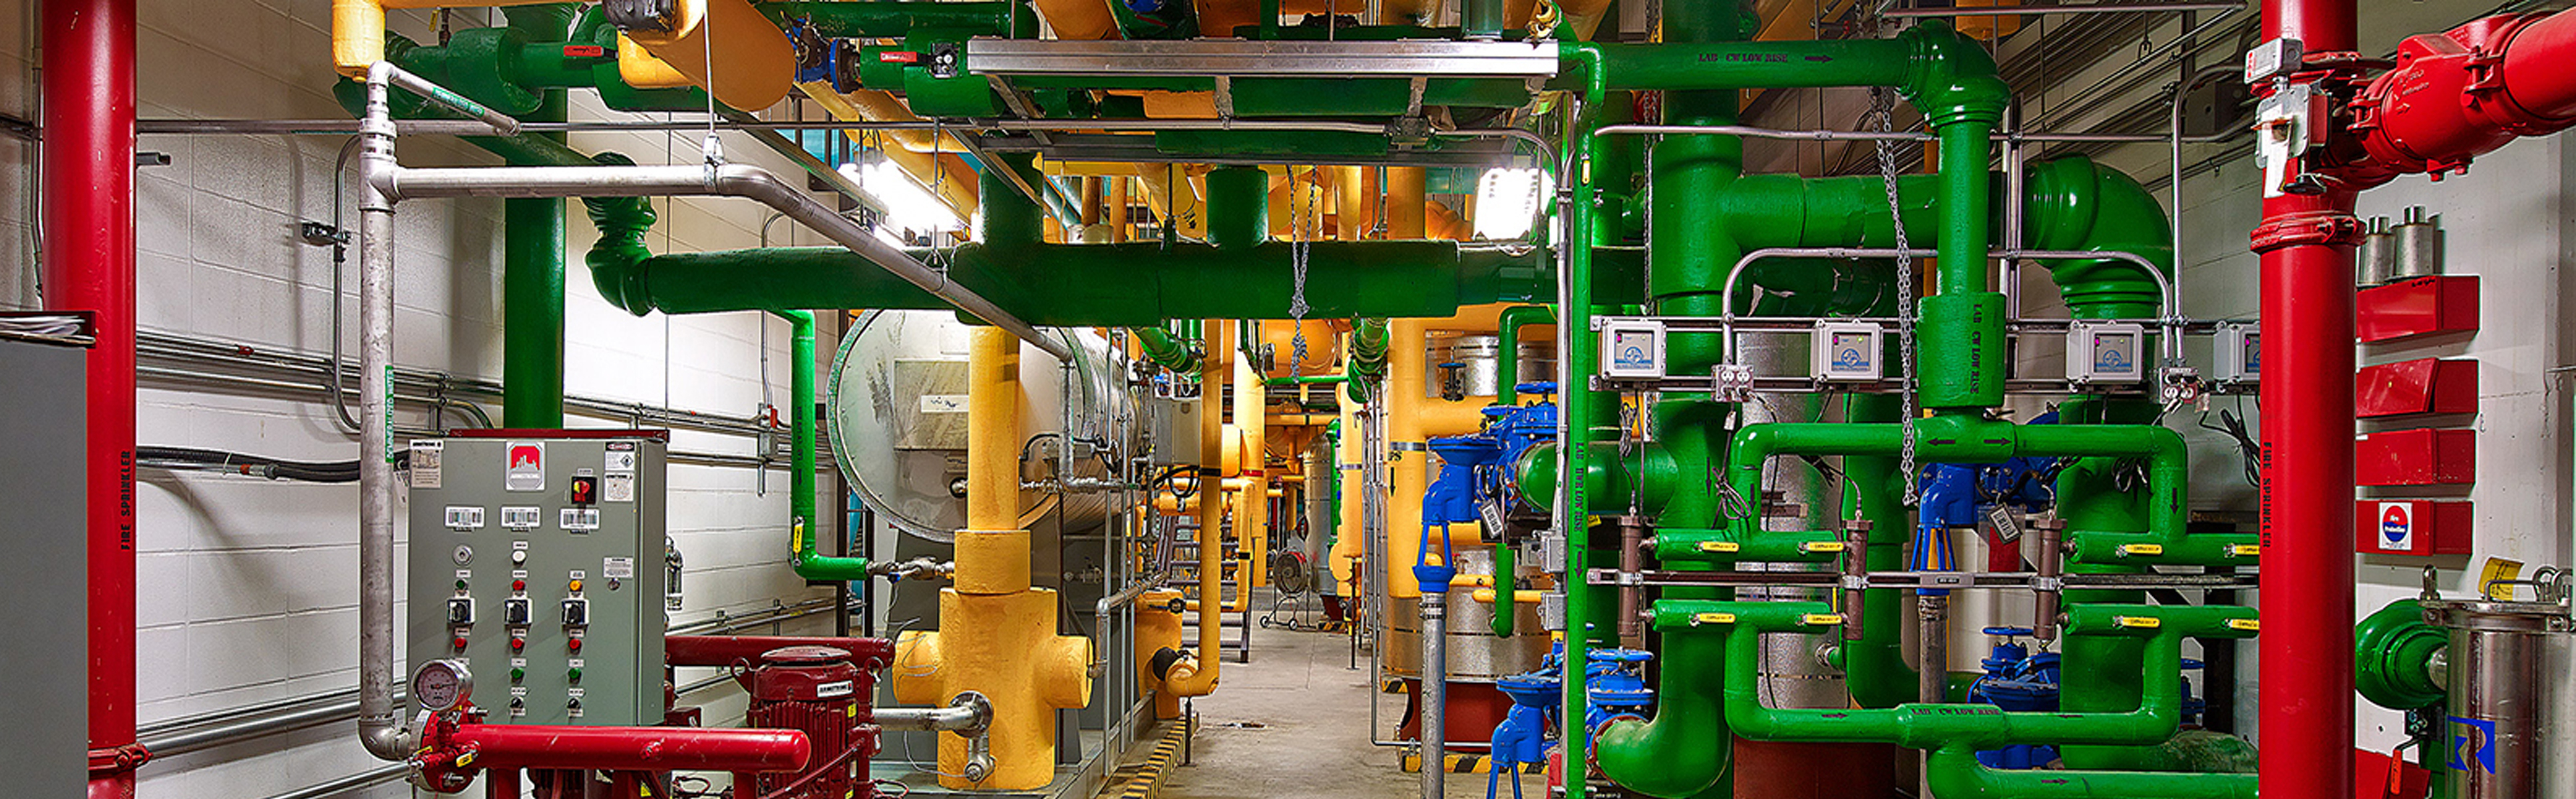 Maritek LTD main image piping